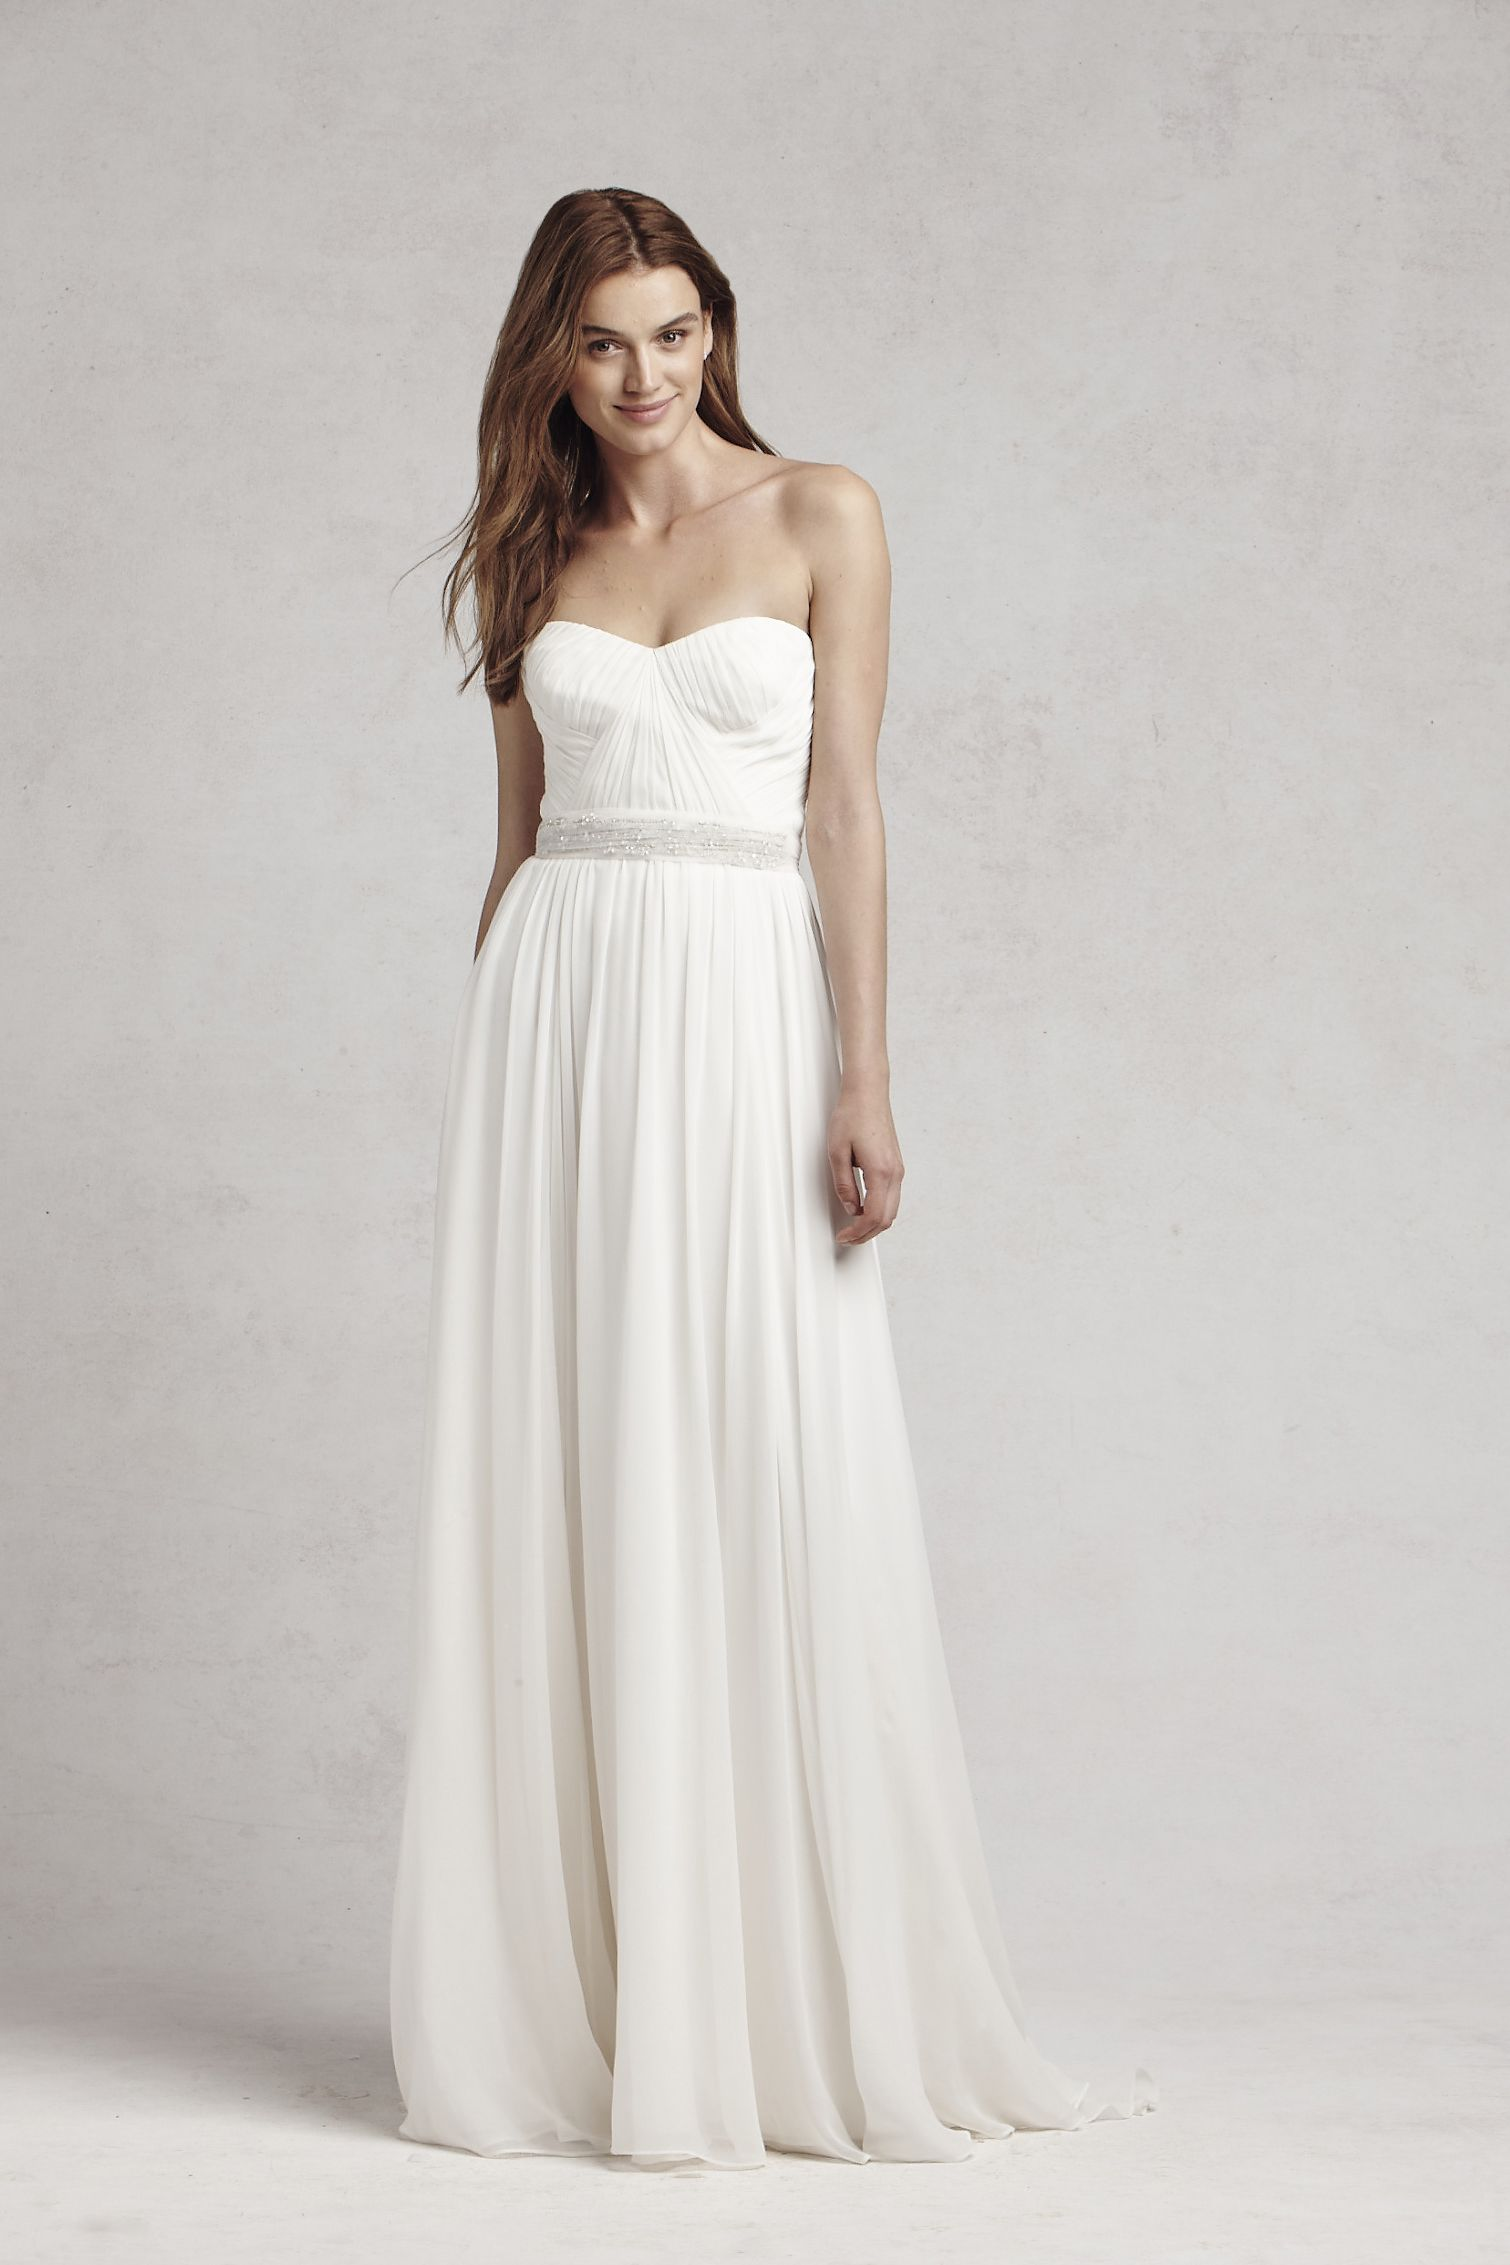 9 shot 12 16132 005 1 wedding gowns pinterest monique bliss monique lhuillier wedding dresses available in orlando fl at solutions bridal view the spring 2016 and 2017 wedding dress collection ombrellifo Choice Image